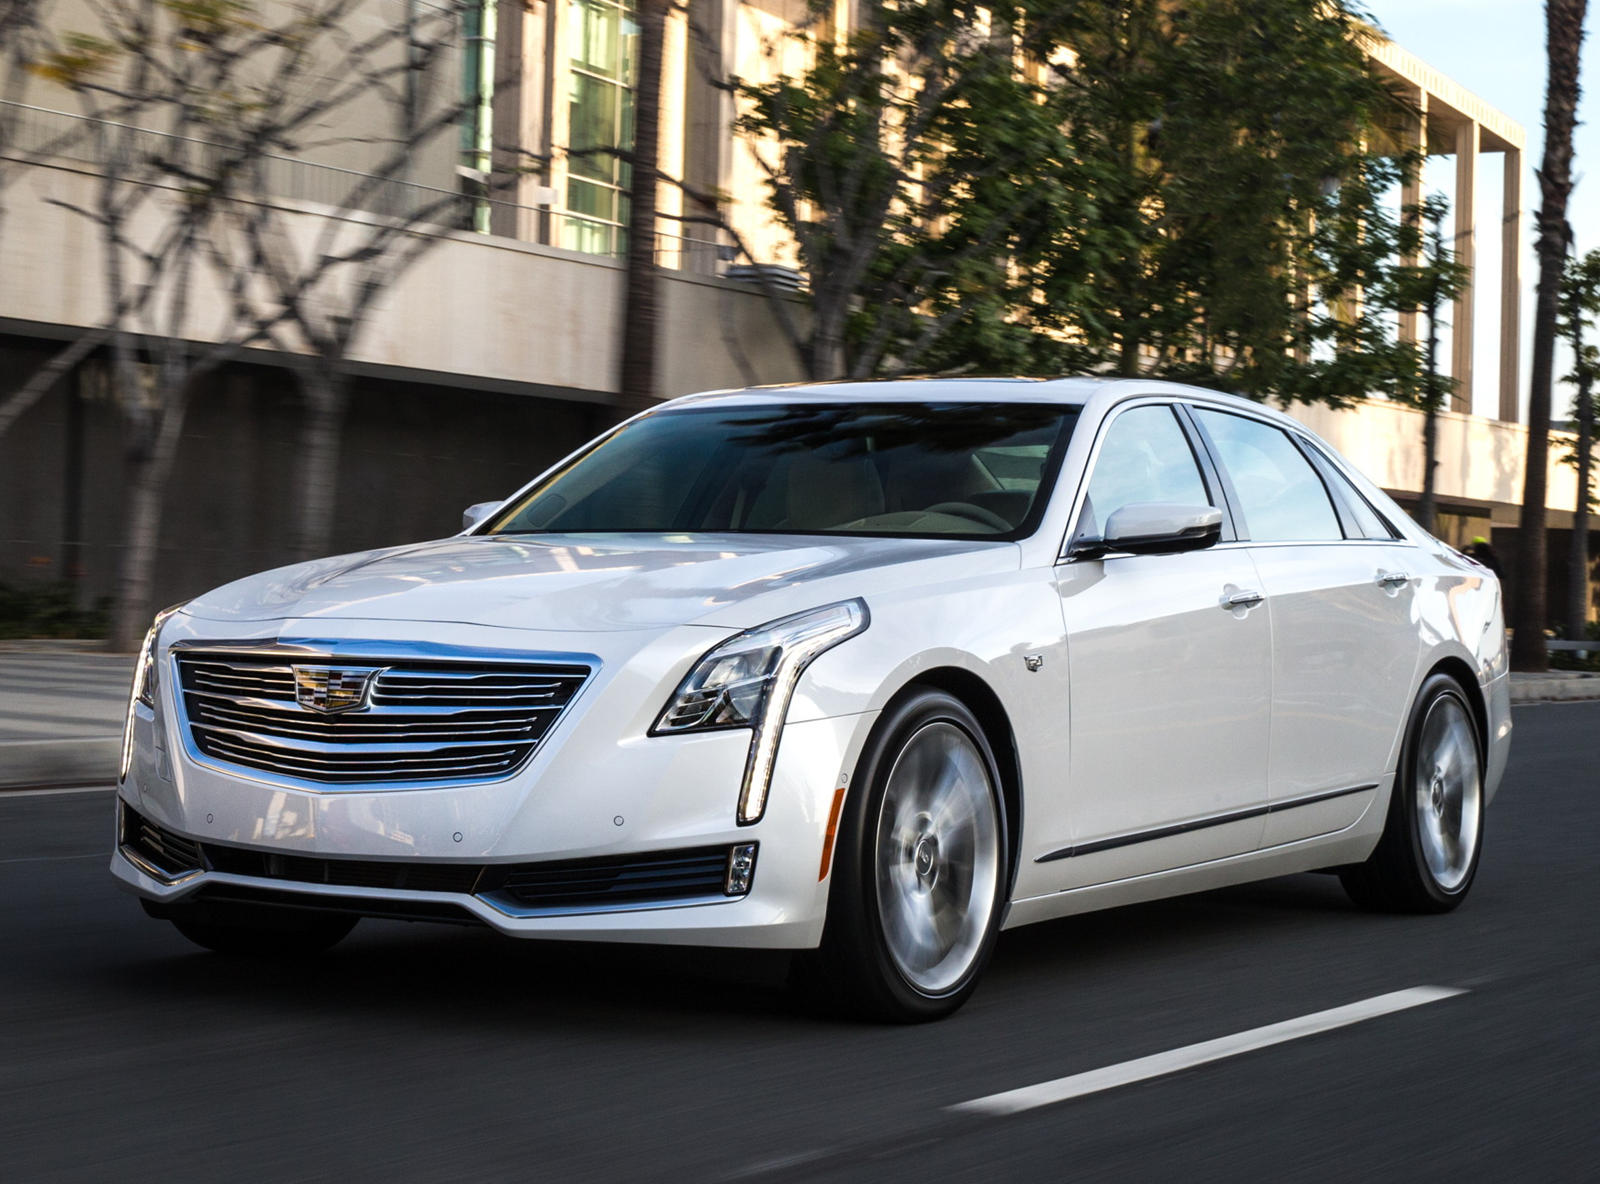 Chevrolet Impala And Cadillac CT6 Receive Life Extension ...